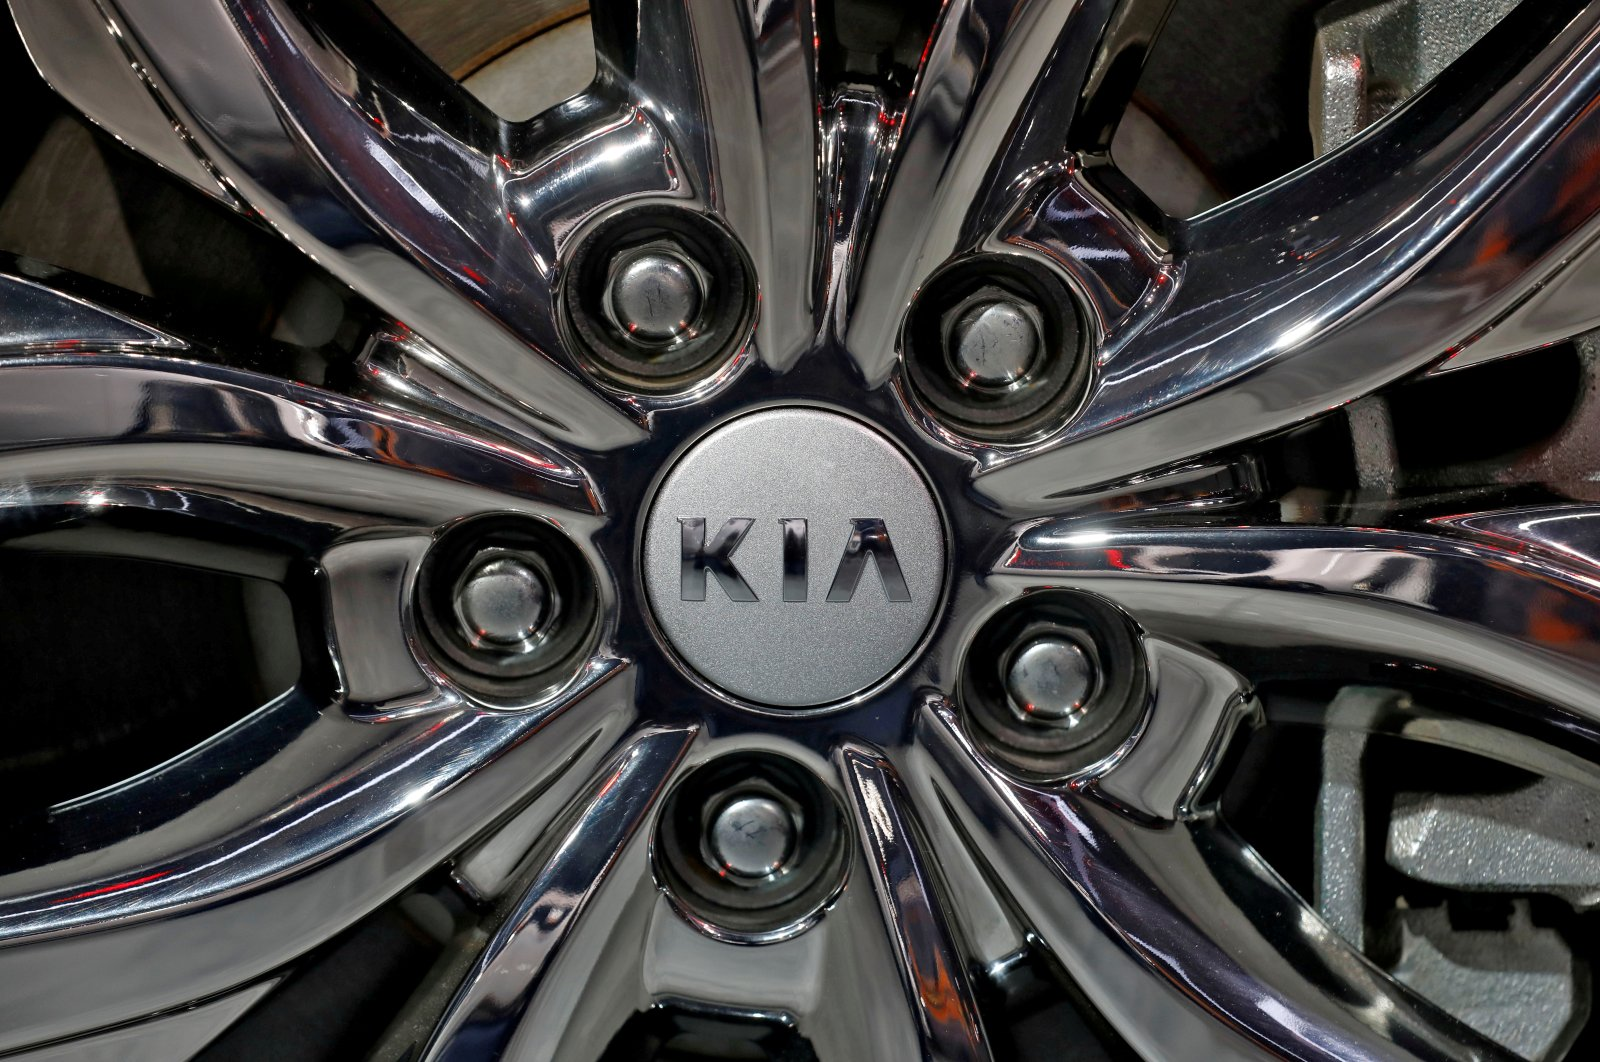 The logo of Kia Motors is seen on a wheel of its Carnival car at the India Auto Expo 2020 in Greater Noida, India, Feb. 5, 2020. (Reuters Photo)